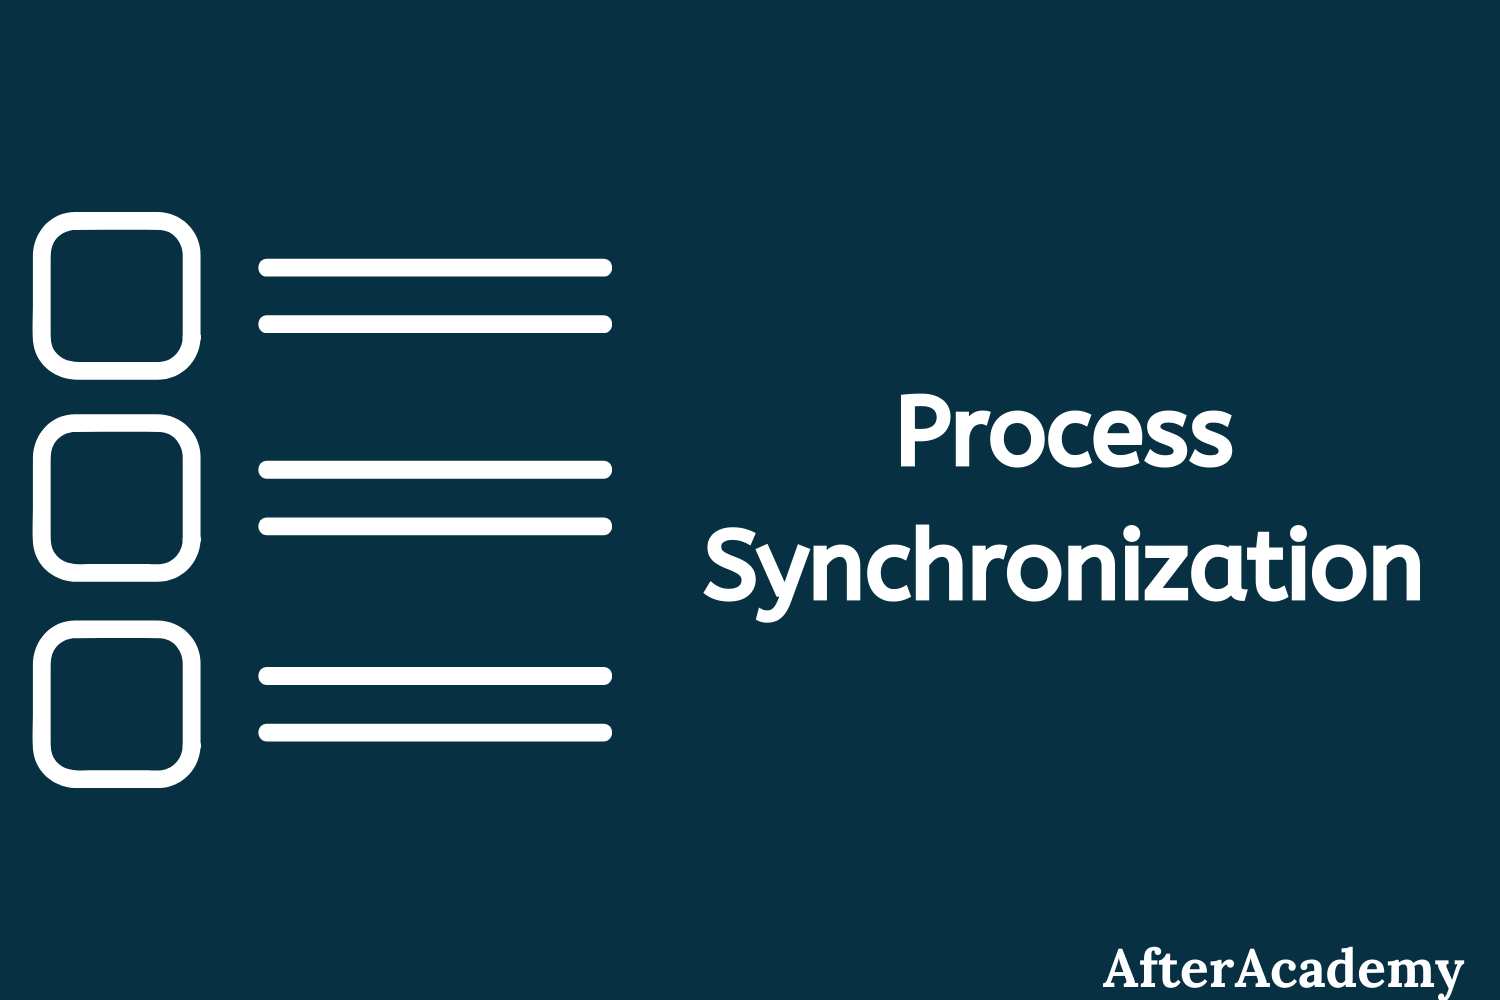 What is Process Synchronization in Operating System?